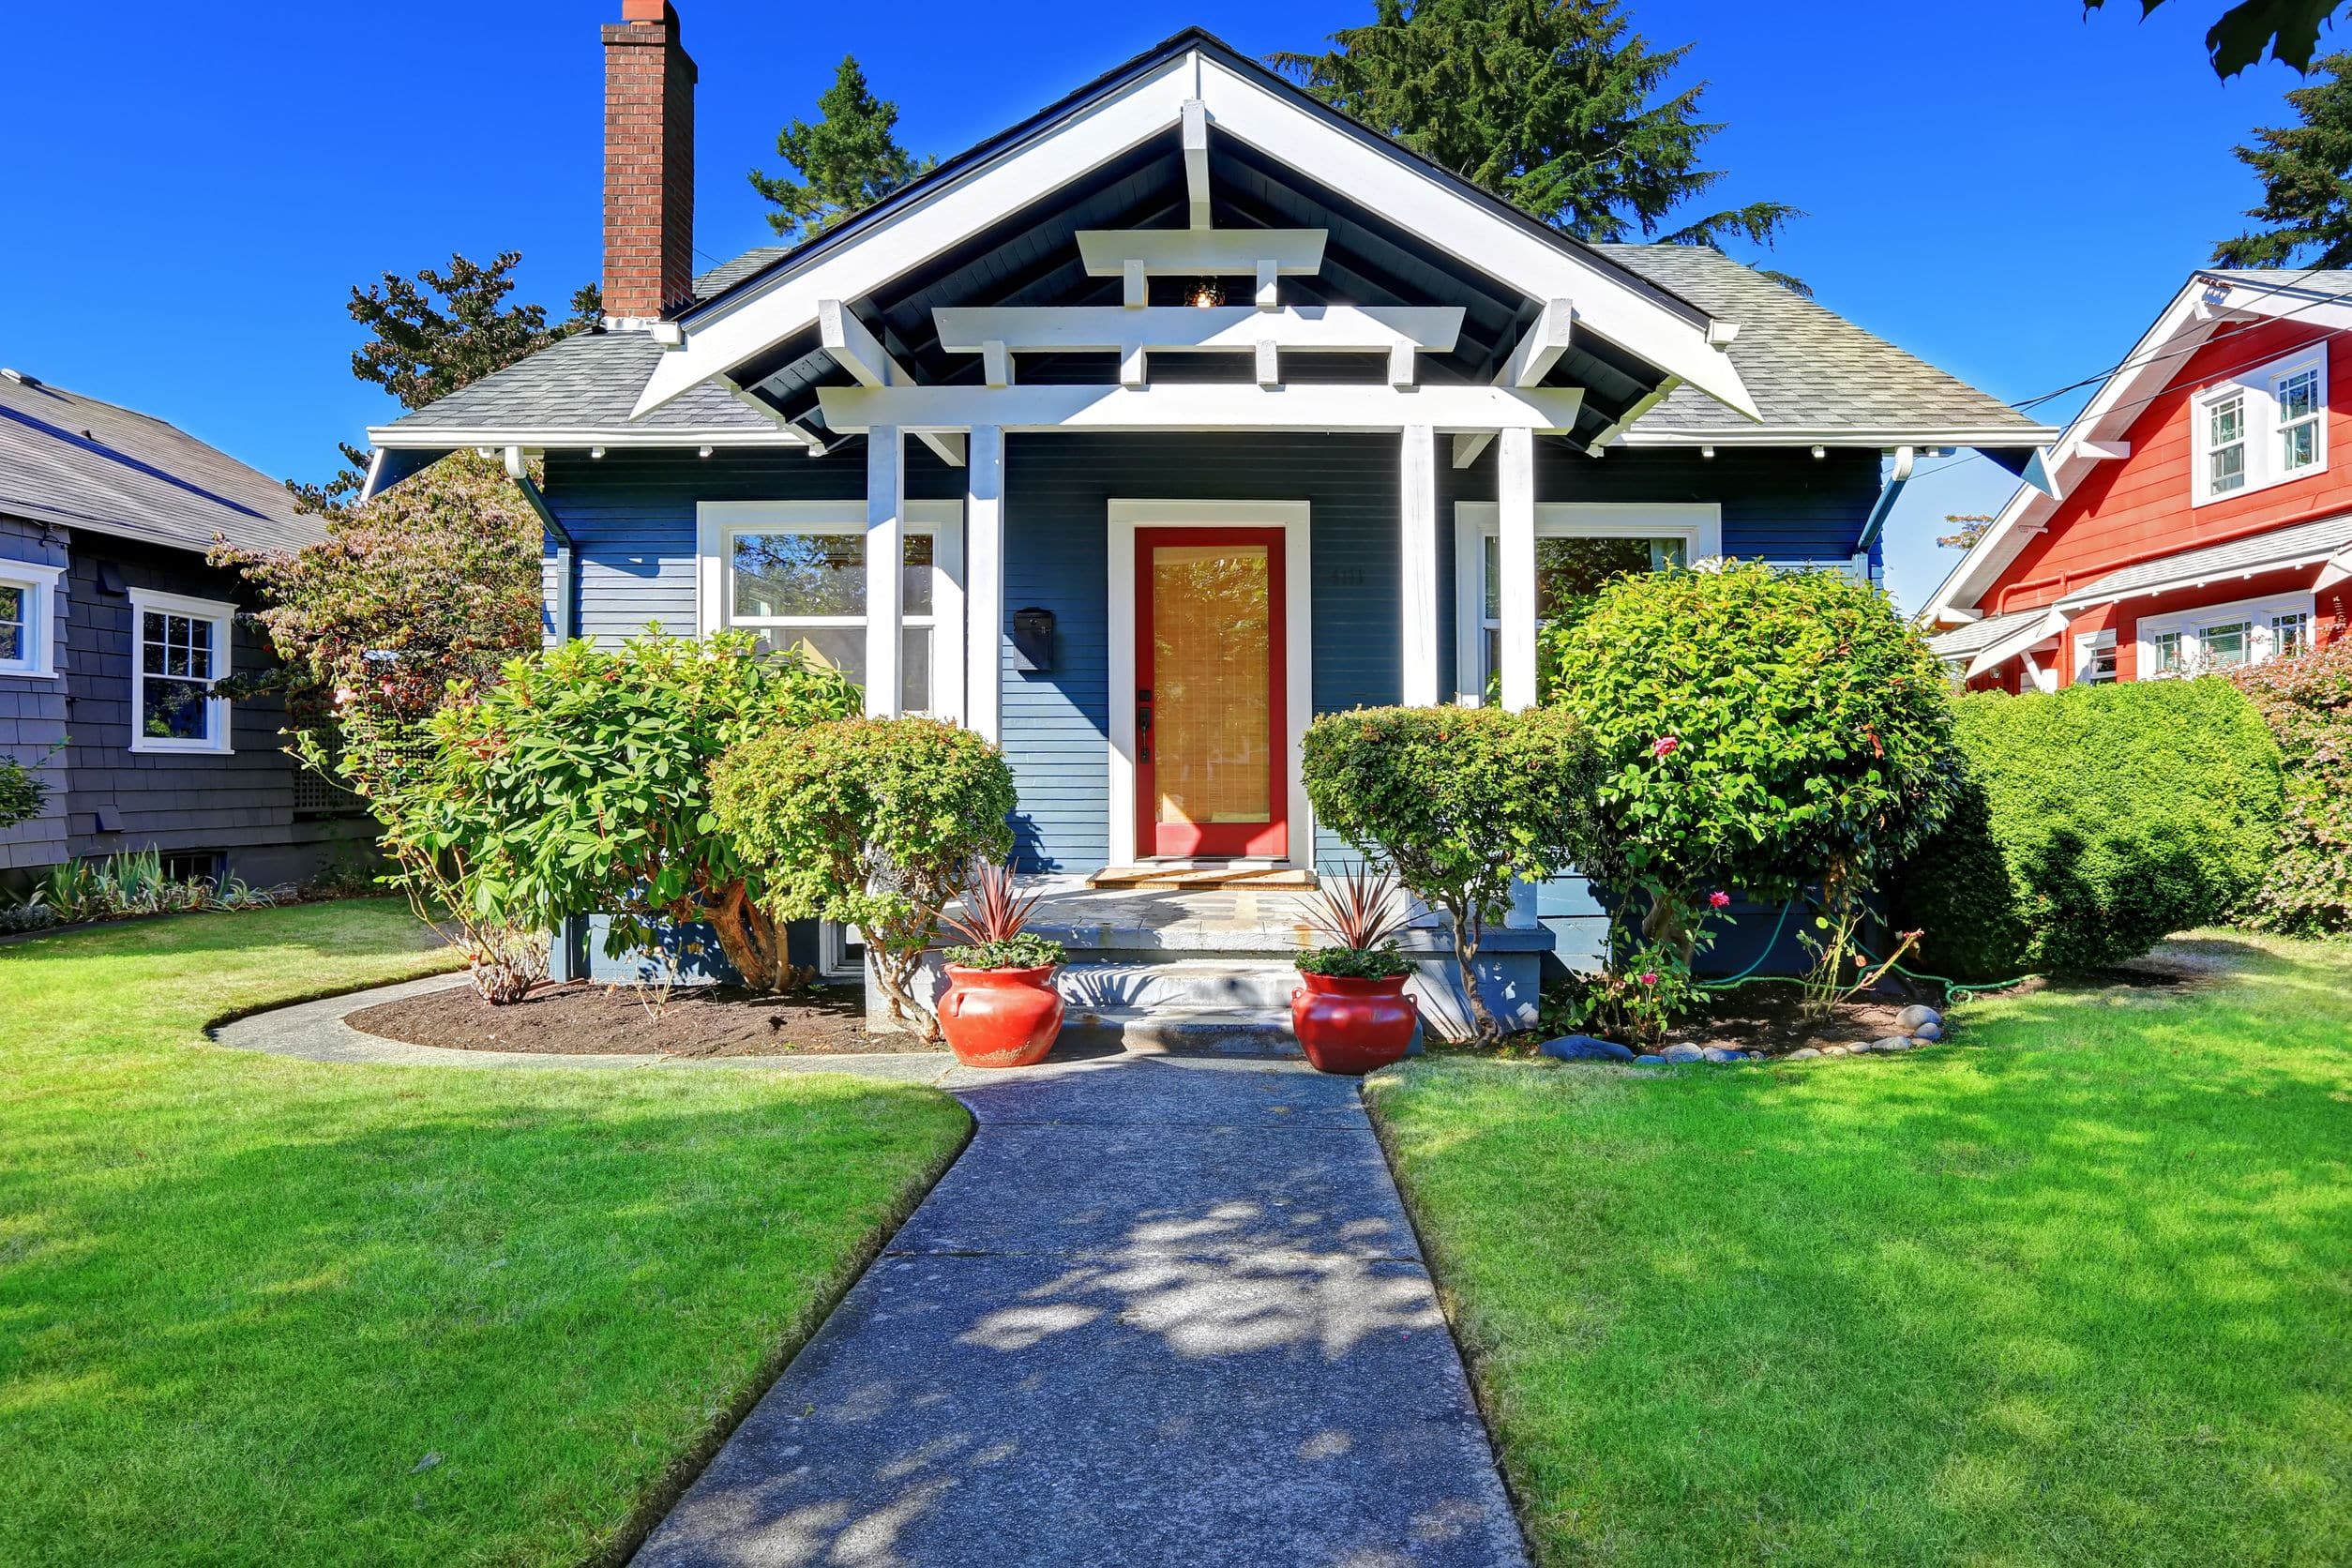 How to Boost Your Home's Curb Appeal on a Budget